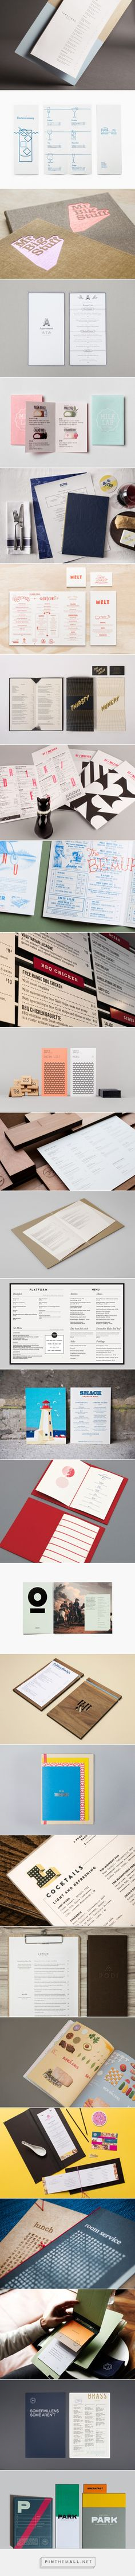 The Best Menu Designs, Inspiration & Gallery